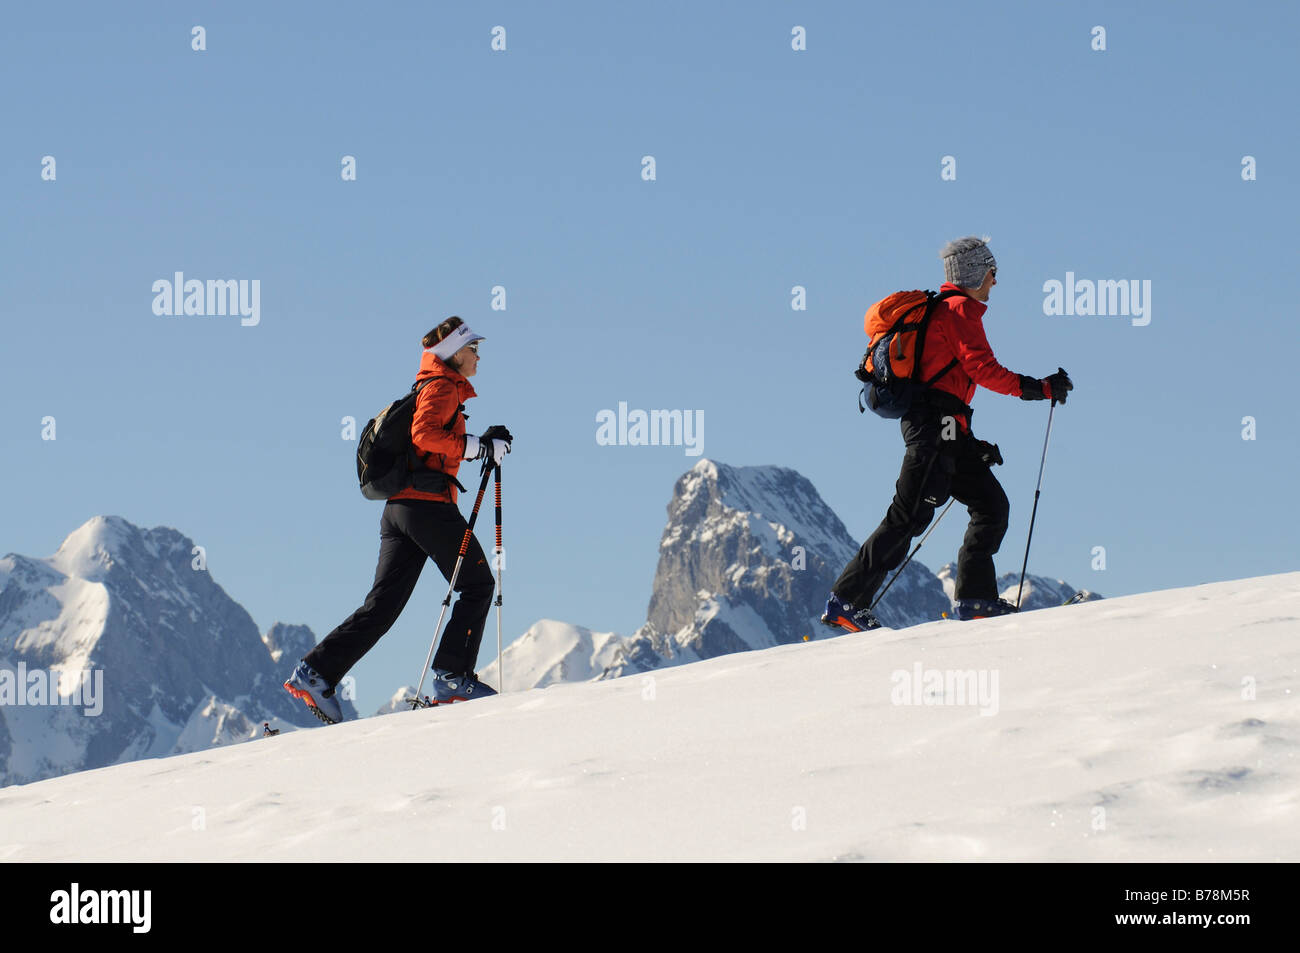 Ski mountain climbers, Zweisimmen, Rueblihorn, Gummfluh, Saanenland, Gstaad, West Alps, Bernese upper country, Switzerland, - Stock Image